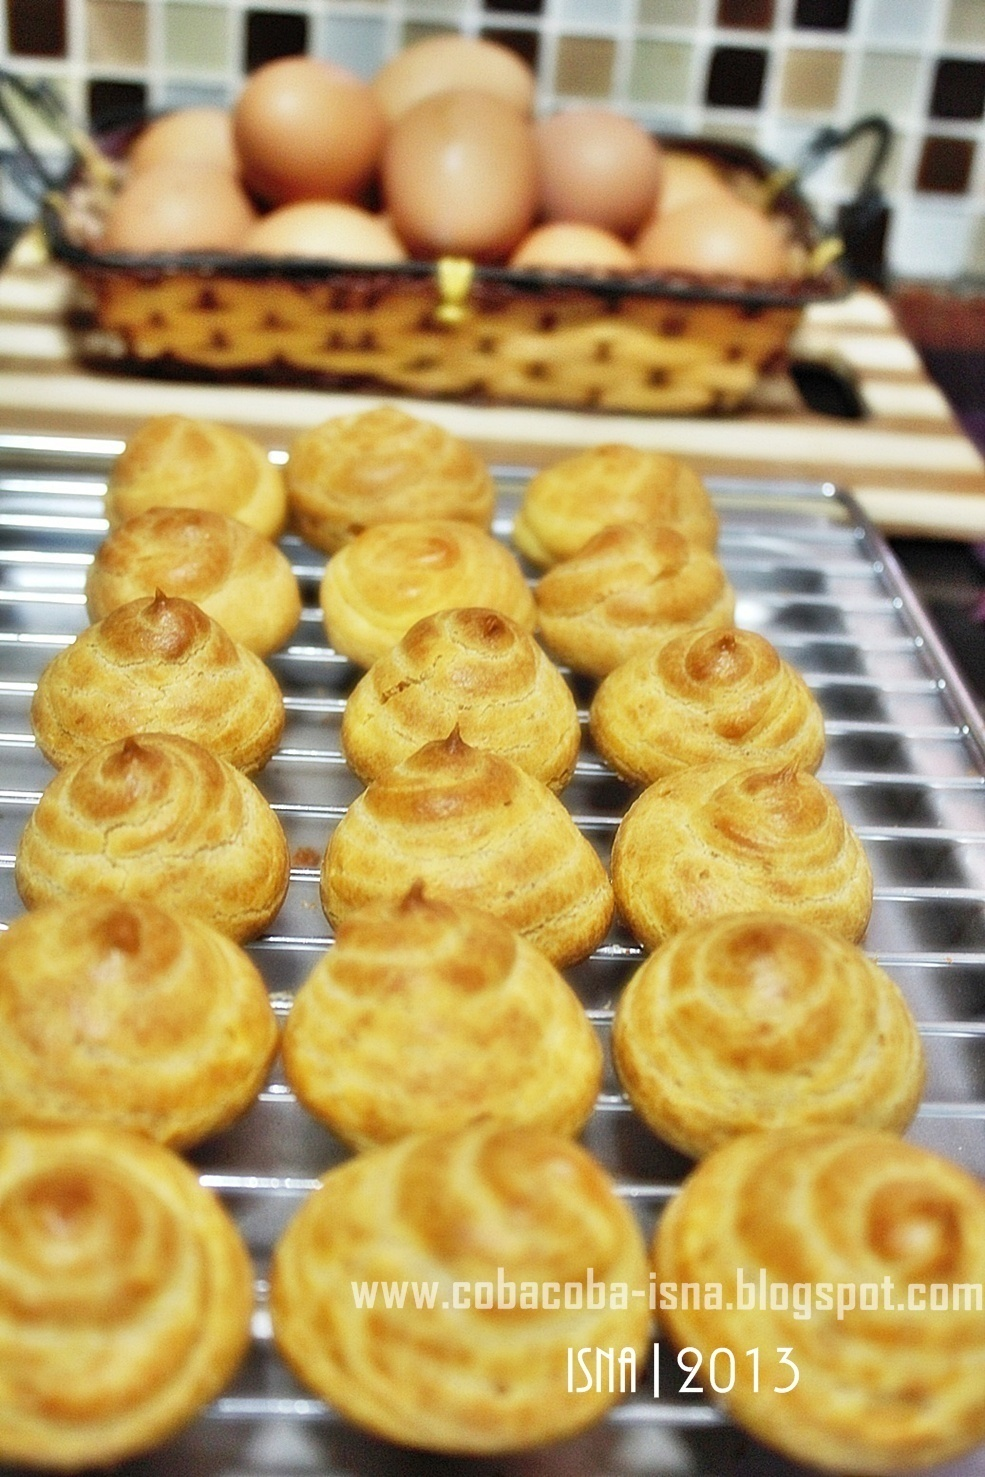 Soes/Choux Pastry